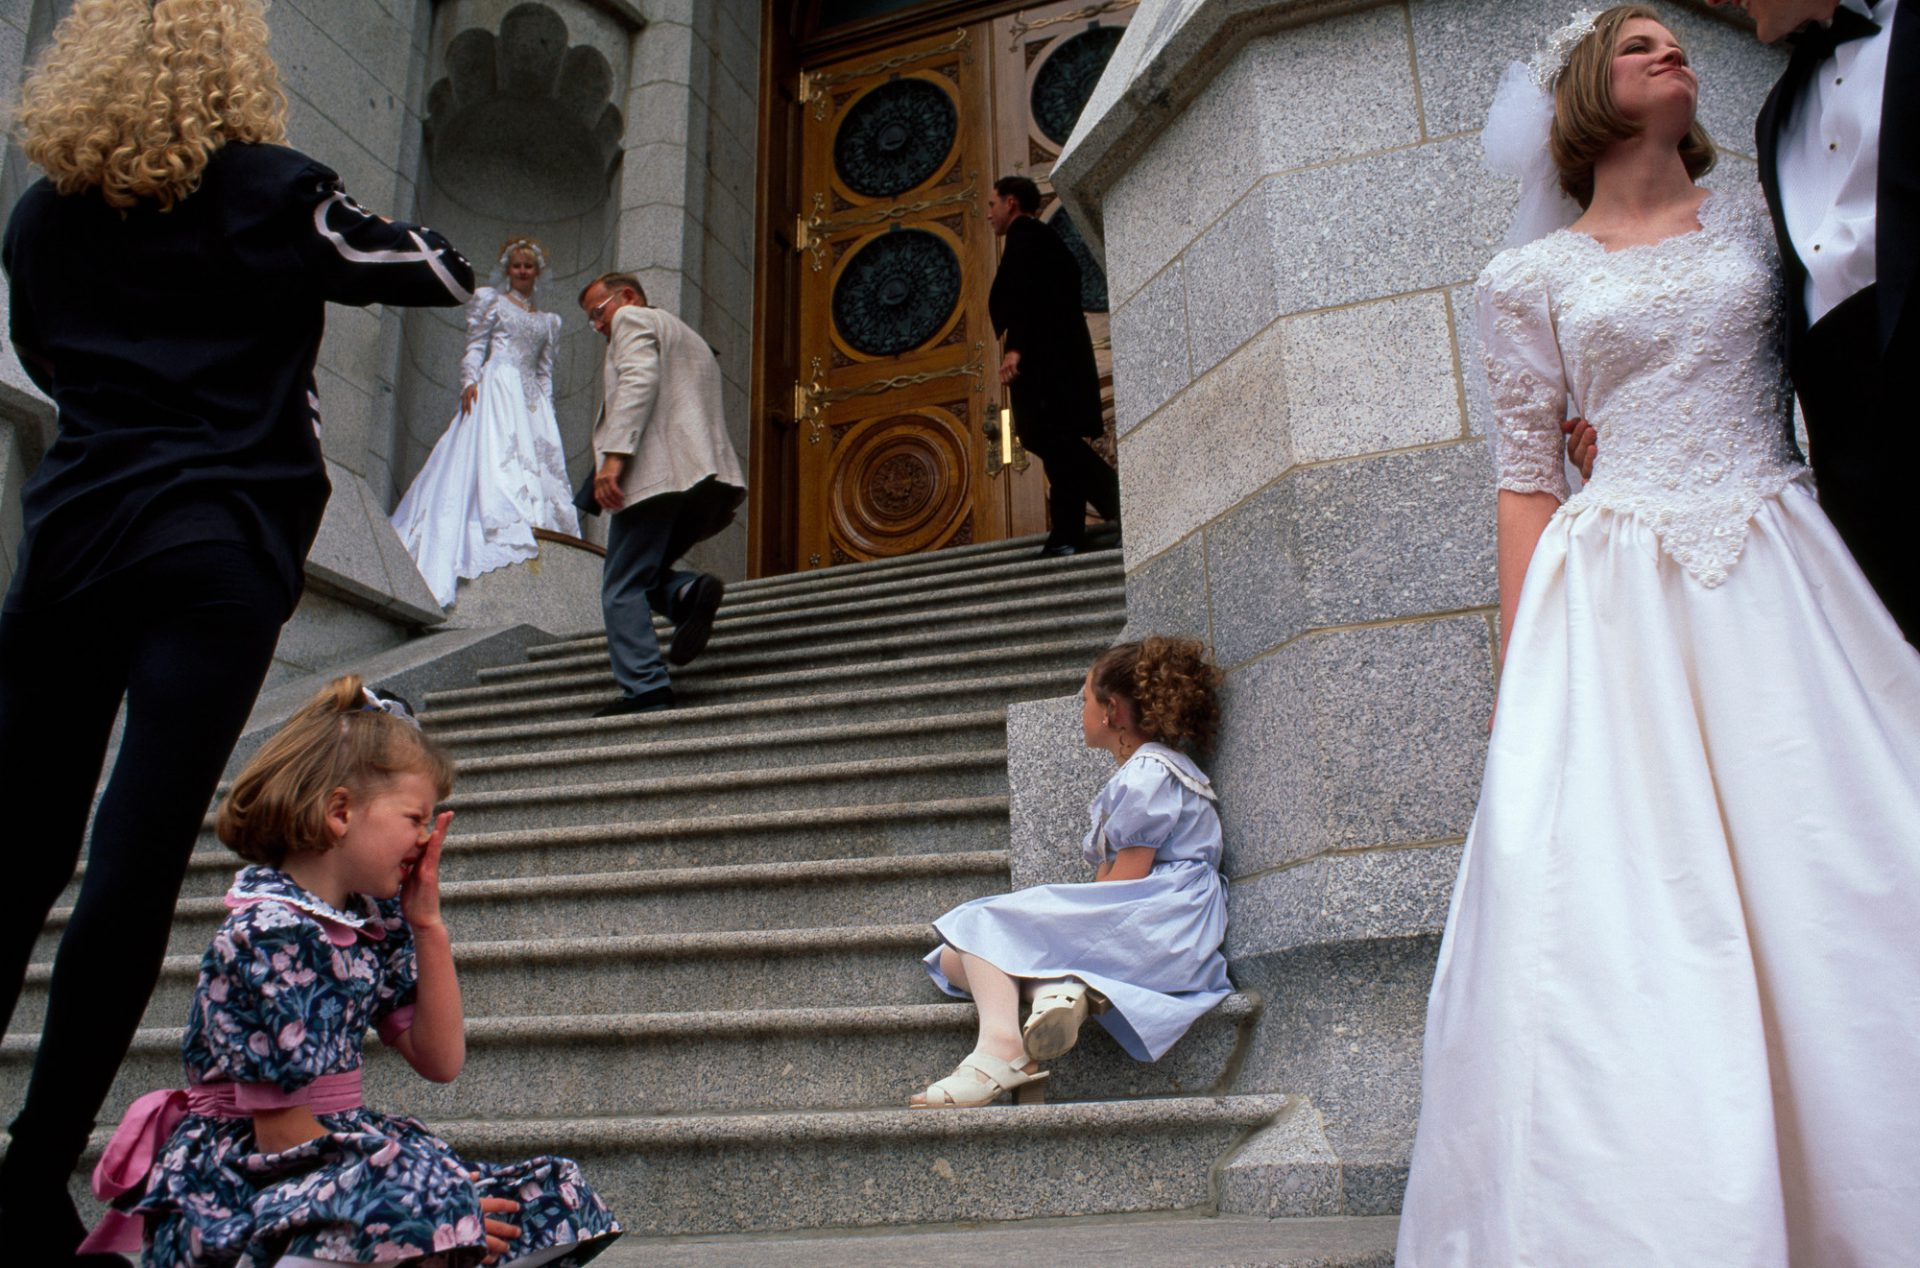 Photo: Newlyweds standing together at the Salt Lake temple in Salt Lake City, Utah.